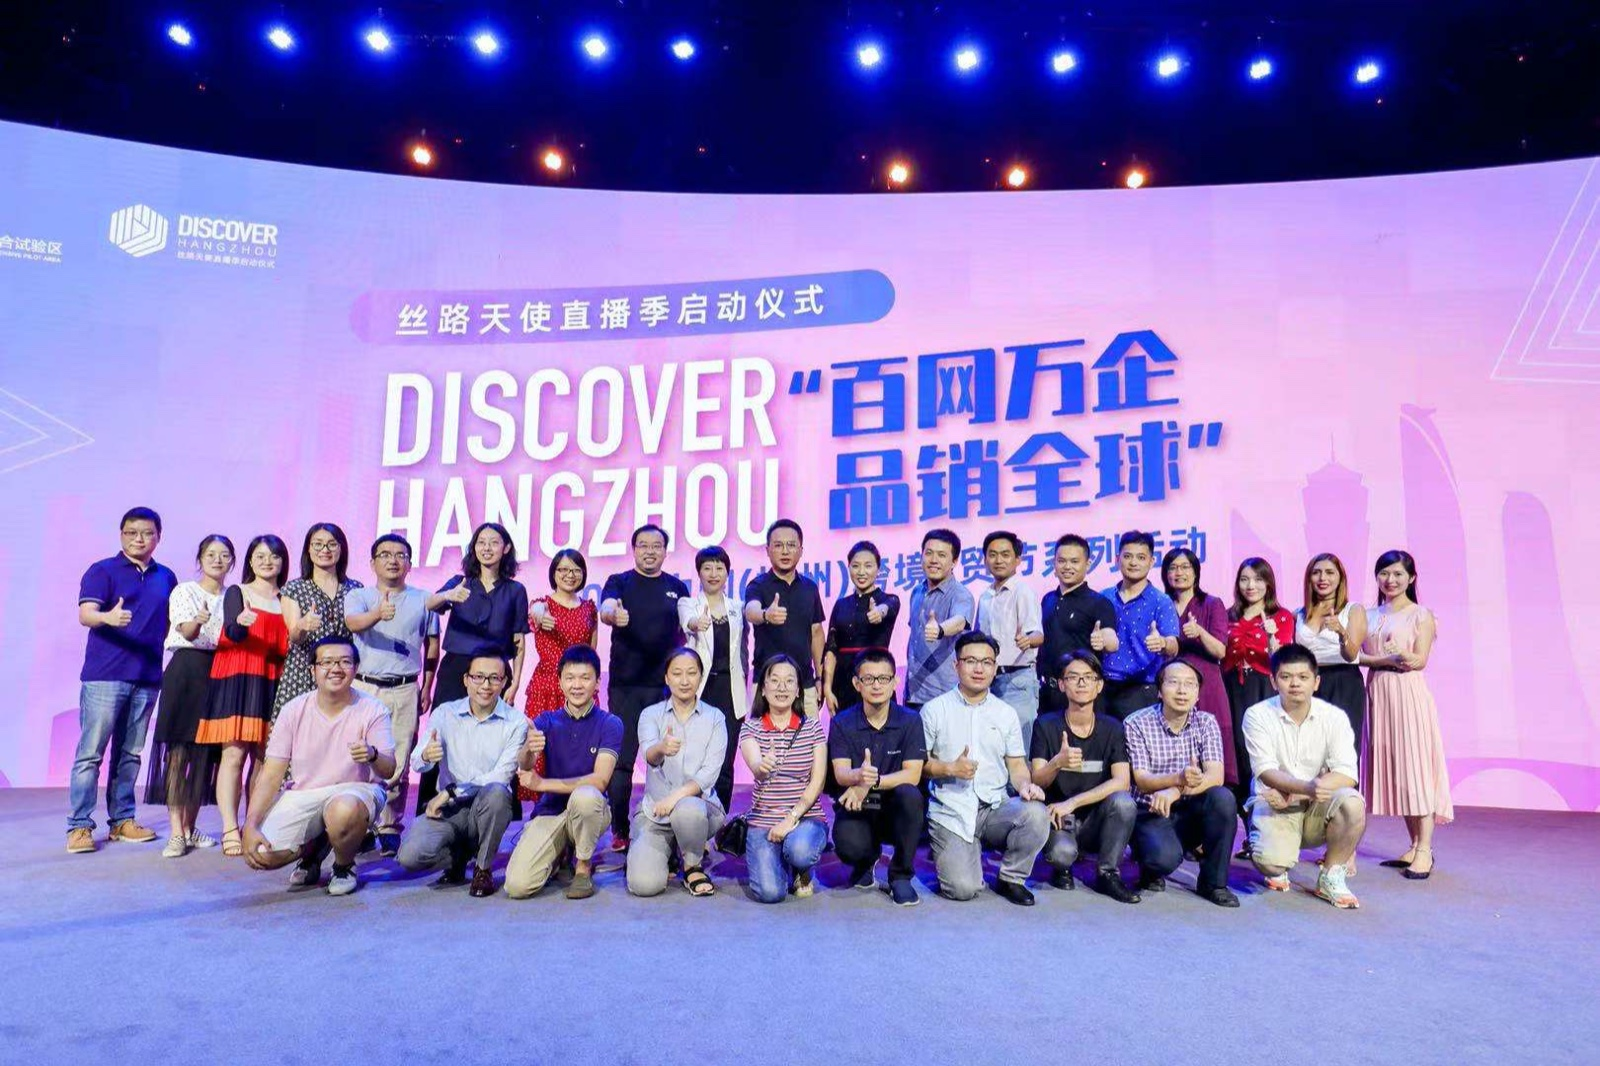 Discover Hangzhou:Silk Road Angel Live Streaming Season Officially Launched Today